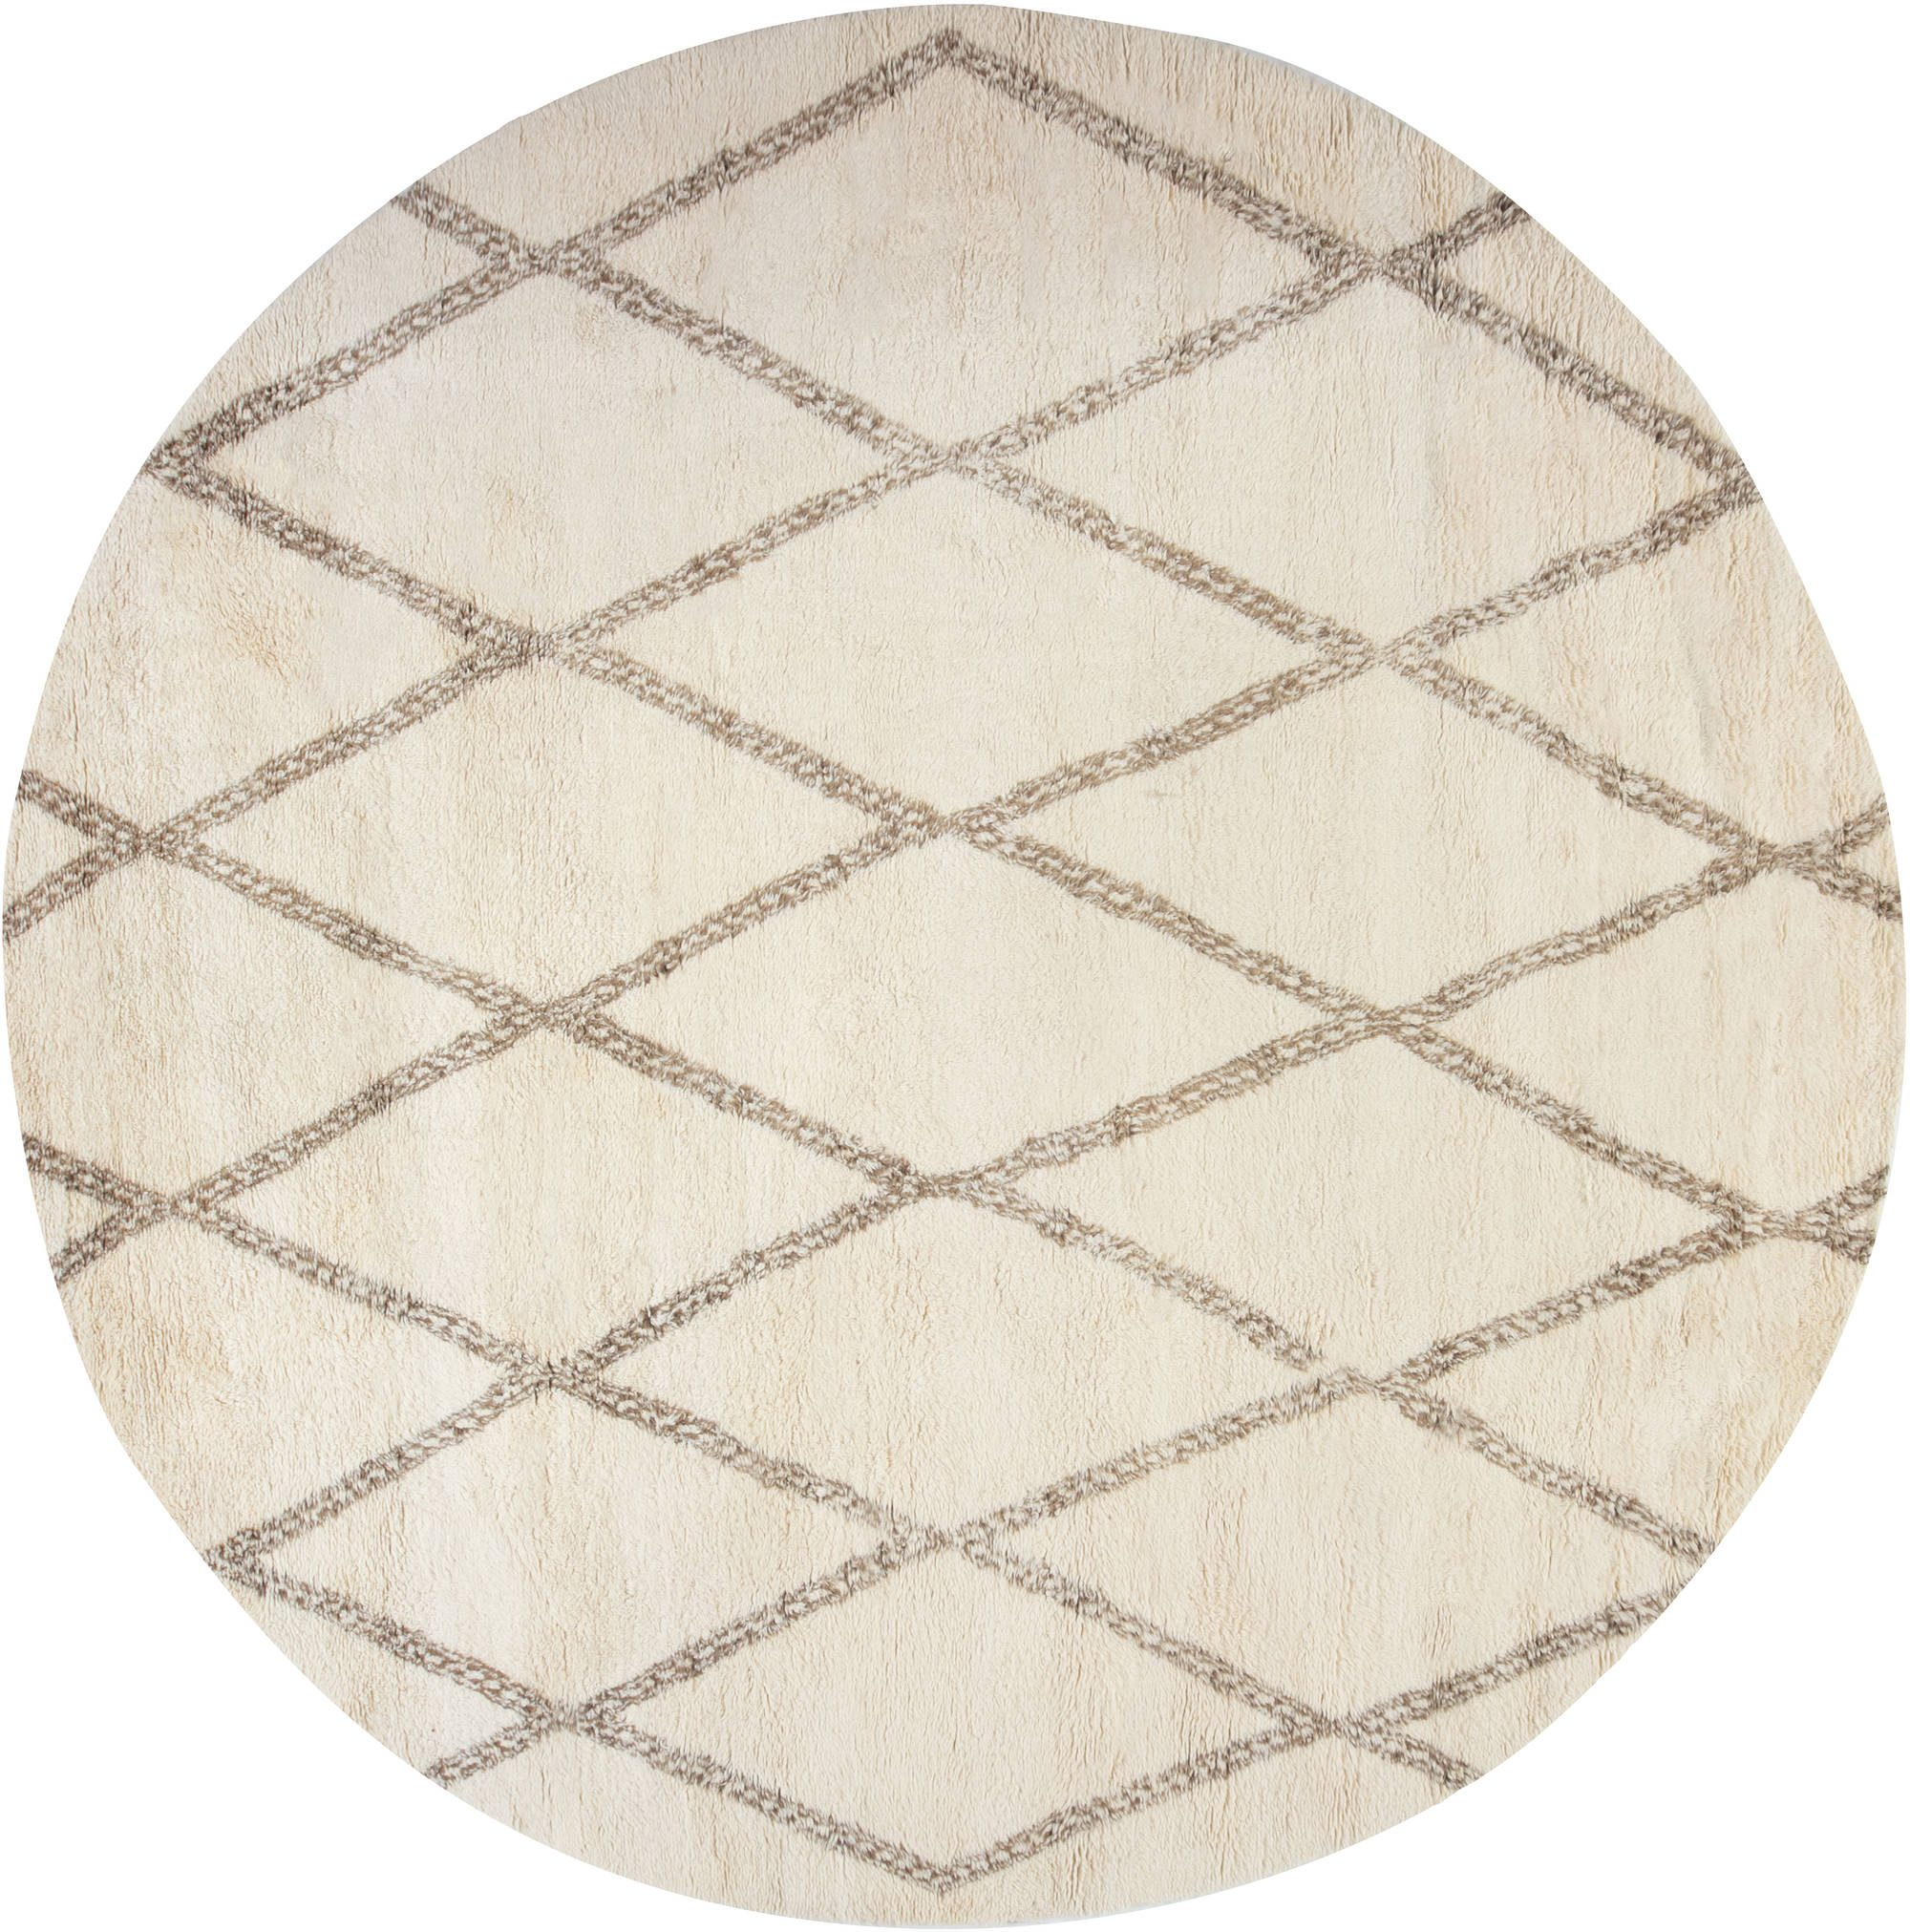 new-round-moroccan-rug-13×13-n12022